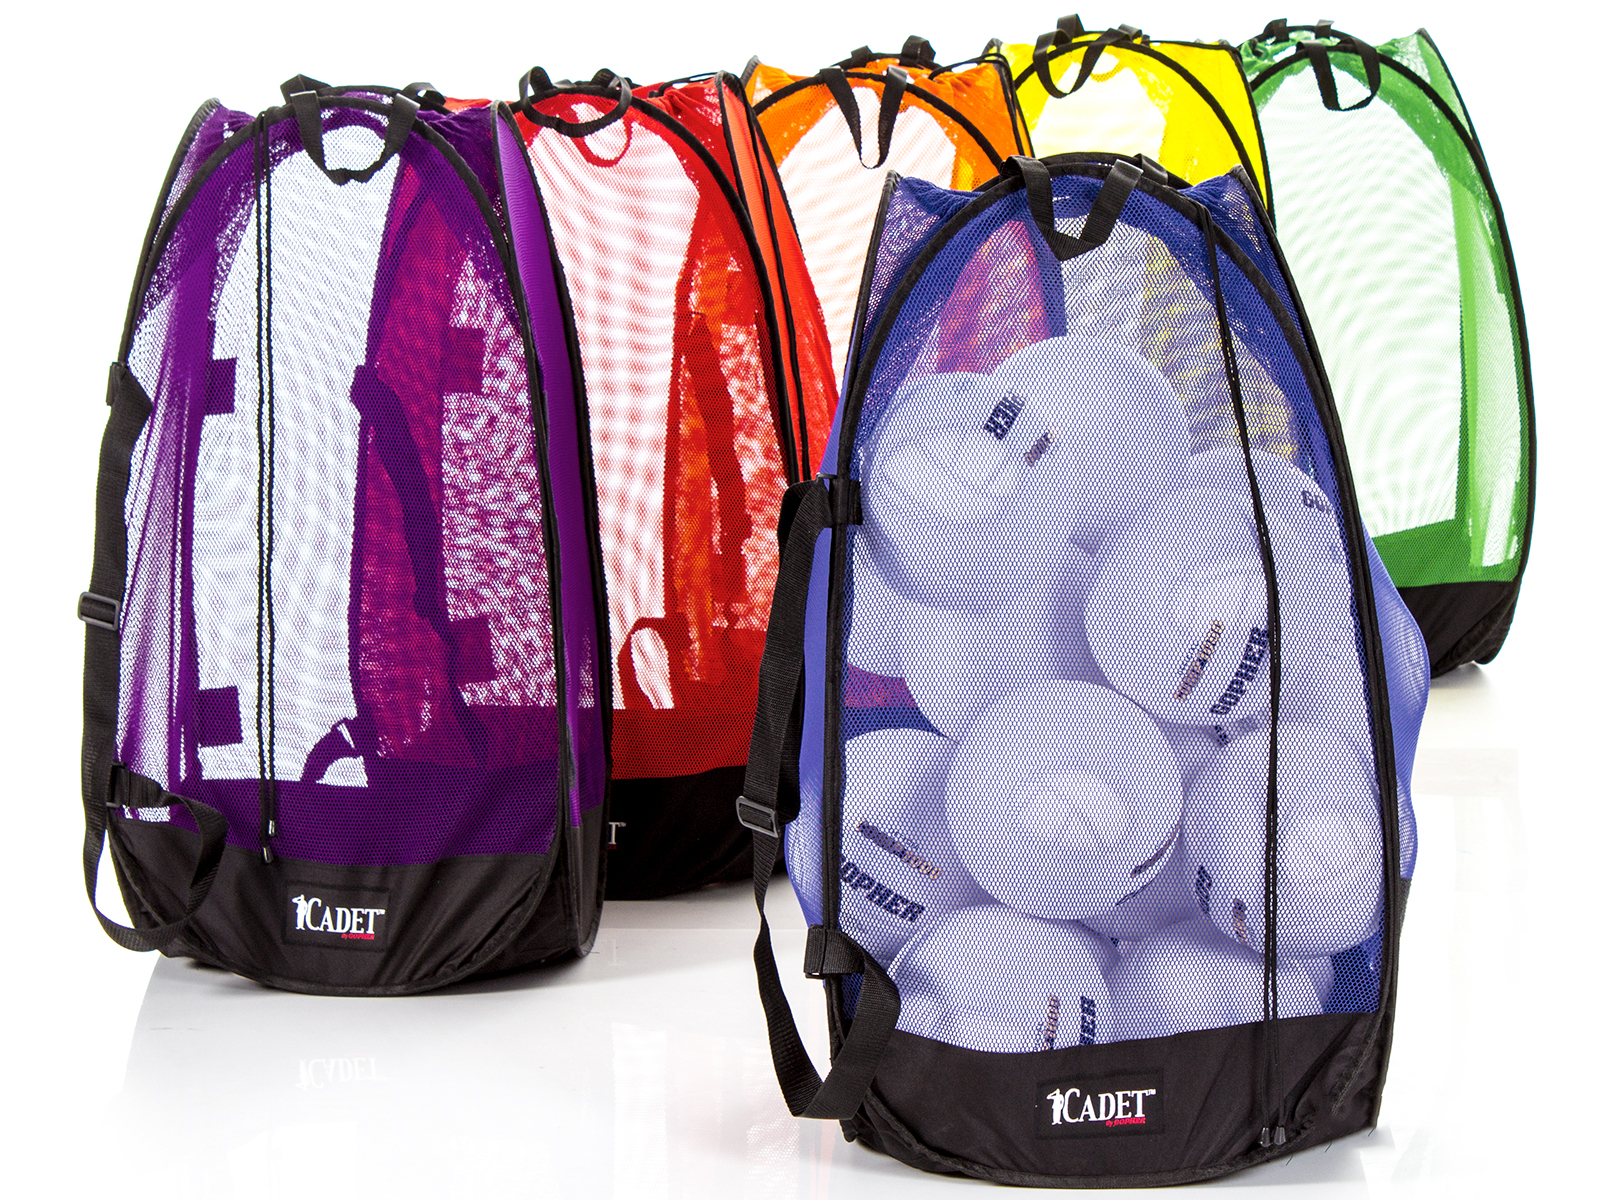 "Rainbow Cadet Stand Up Mesh Bag - Medium (36""H x 18"" sq), Set of 6"